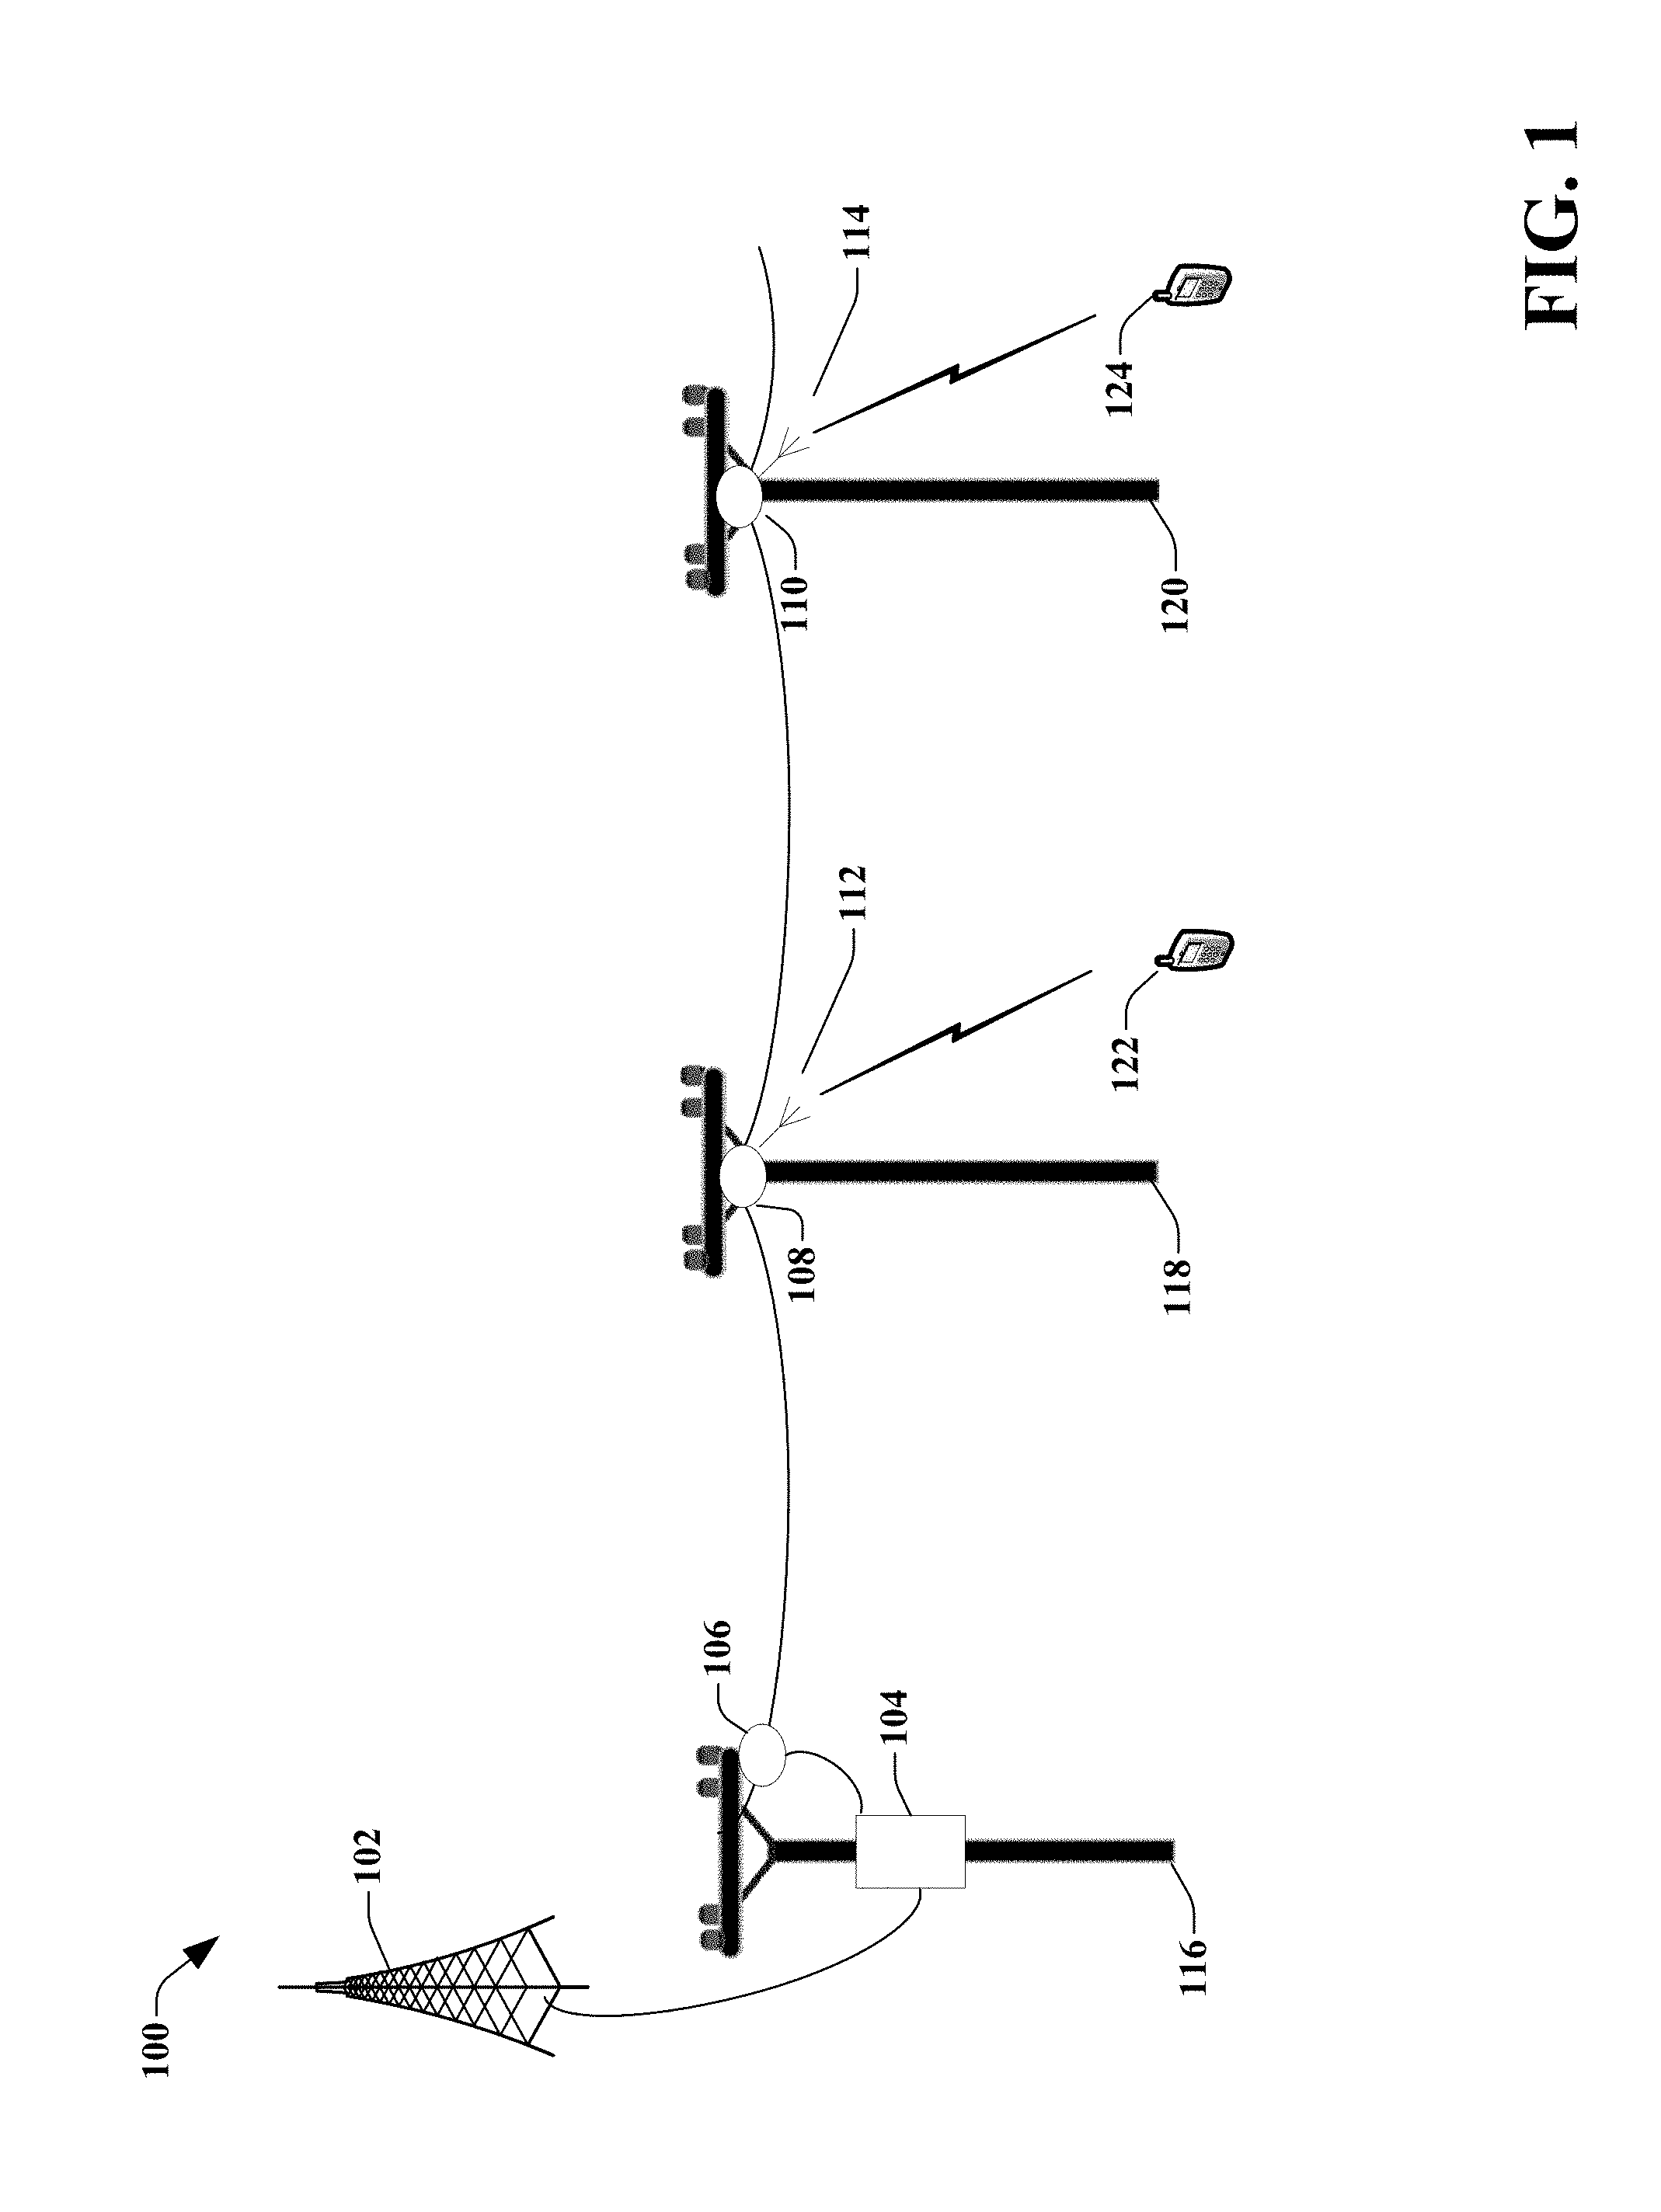 us9749083b2 transmission device with mode division multiplexing rh patents google com